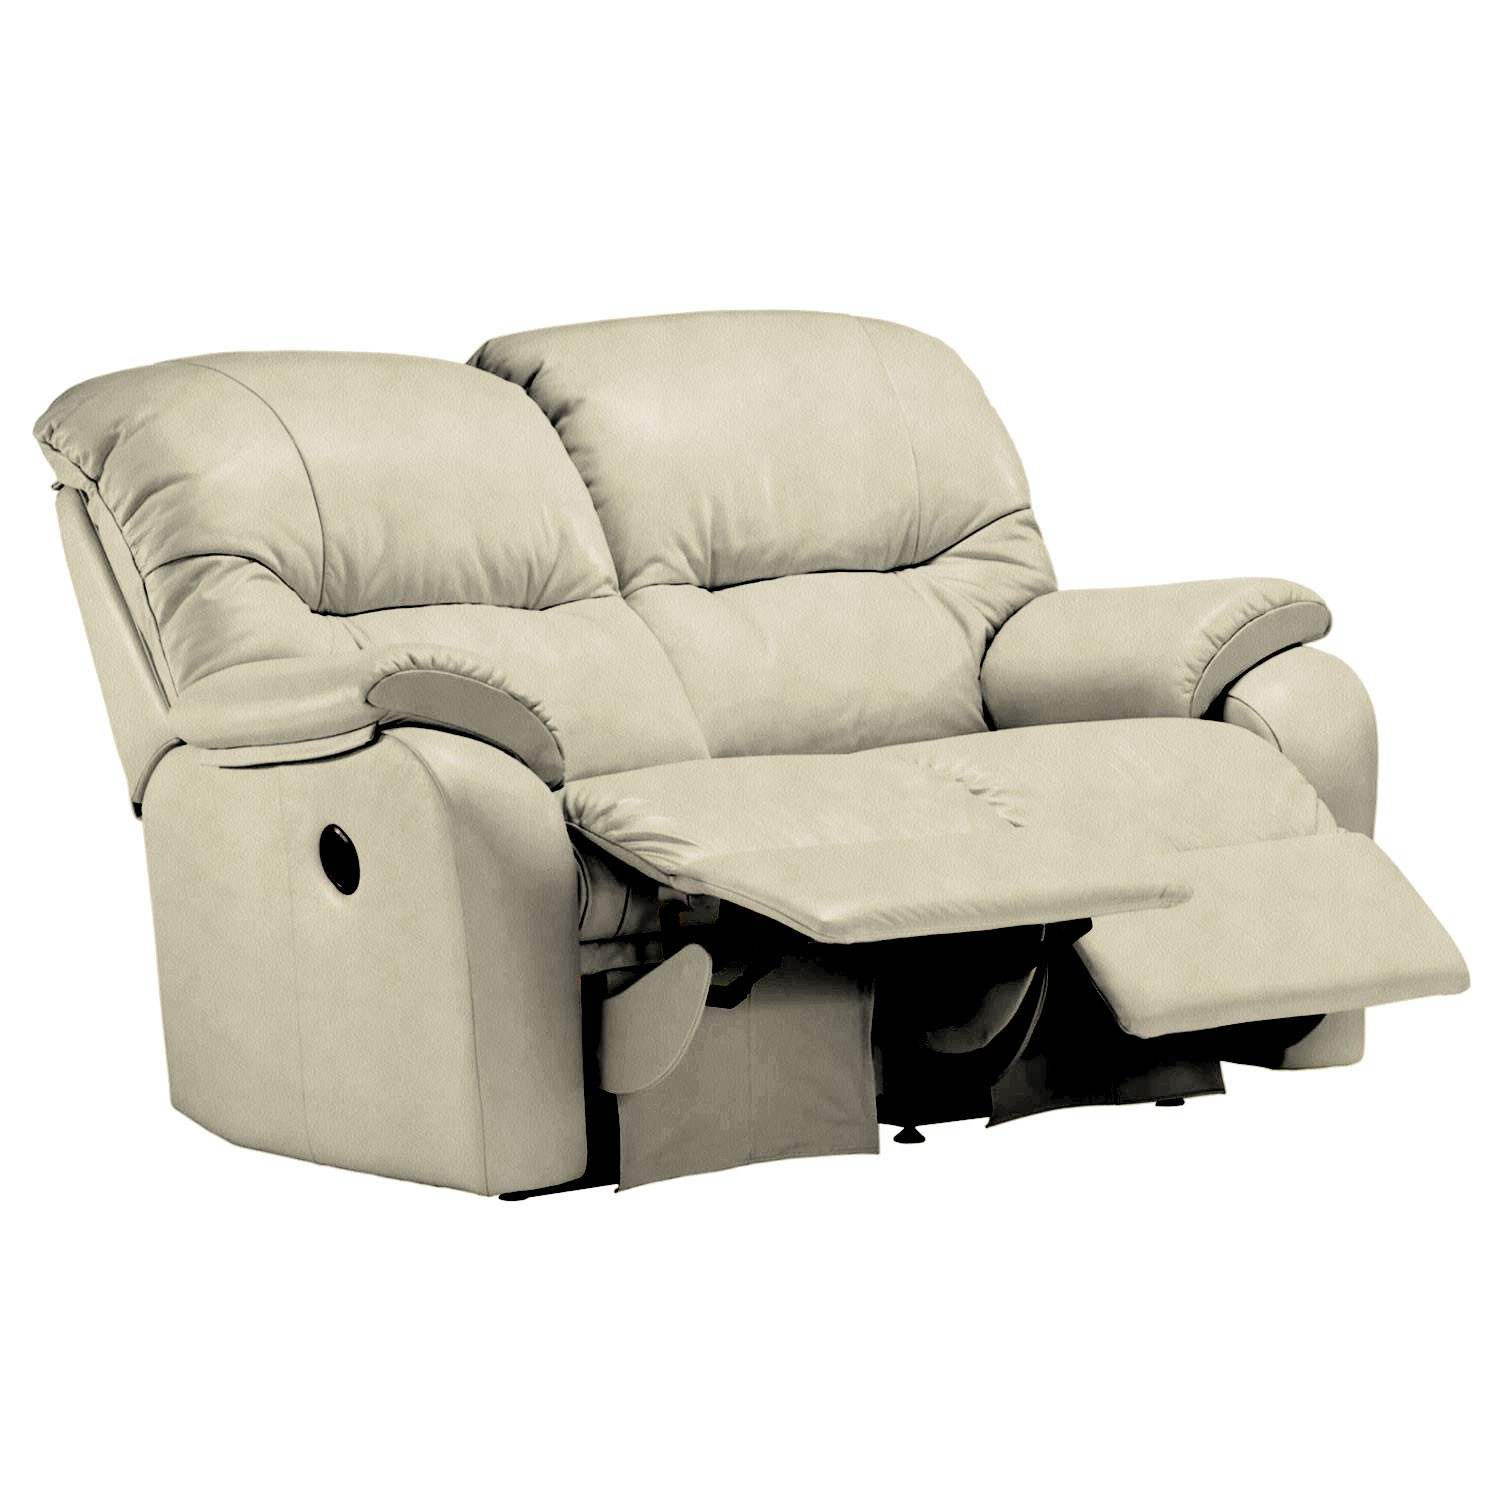 2 seater power recliner sofa cheap sectional sofas portland g plan mistral two double